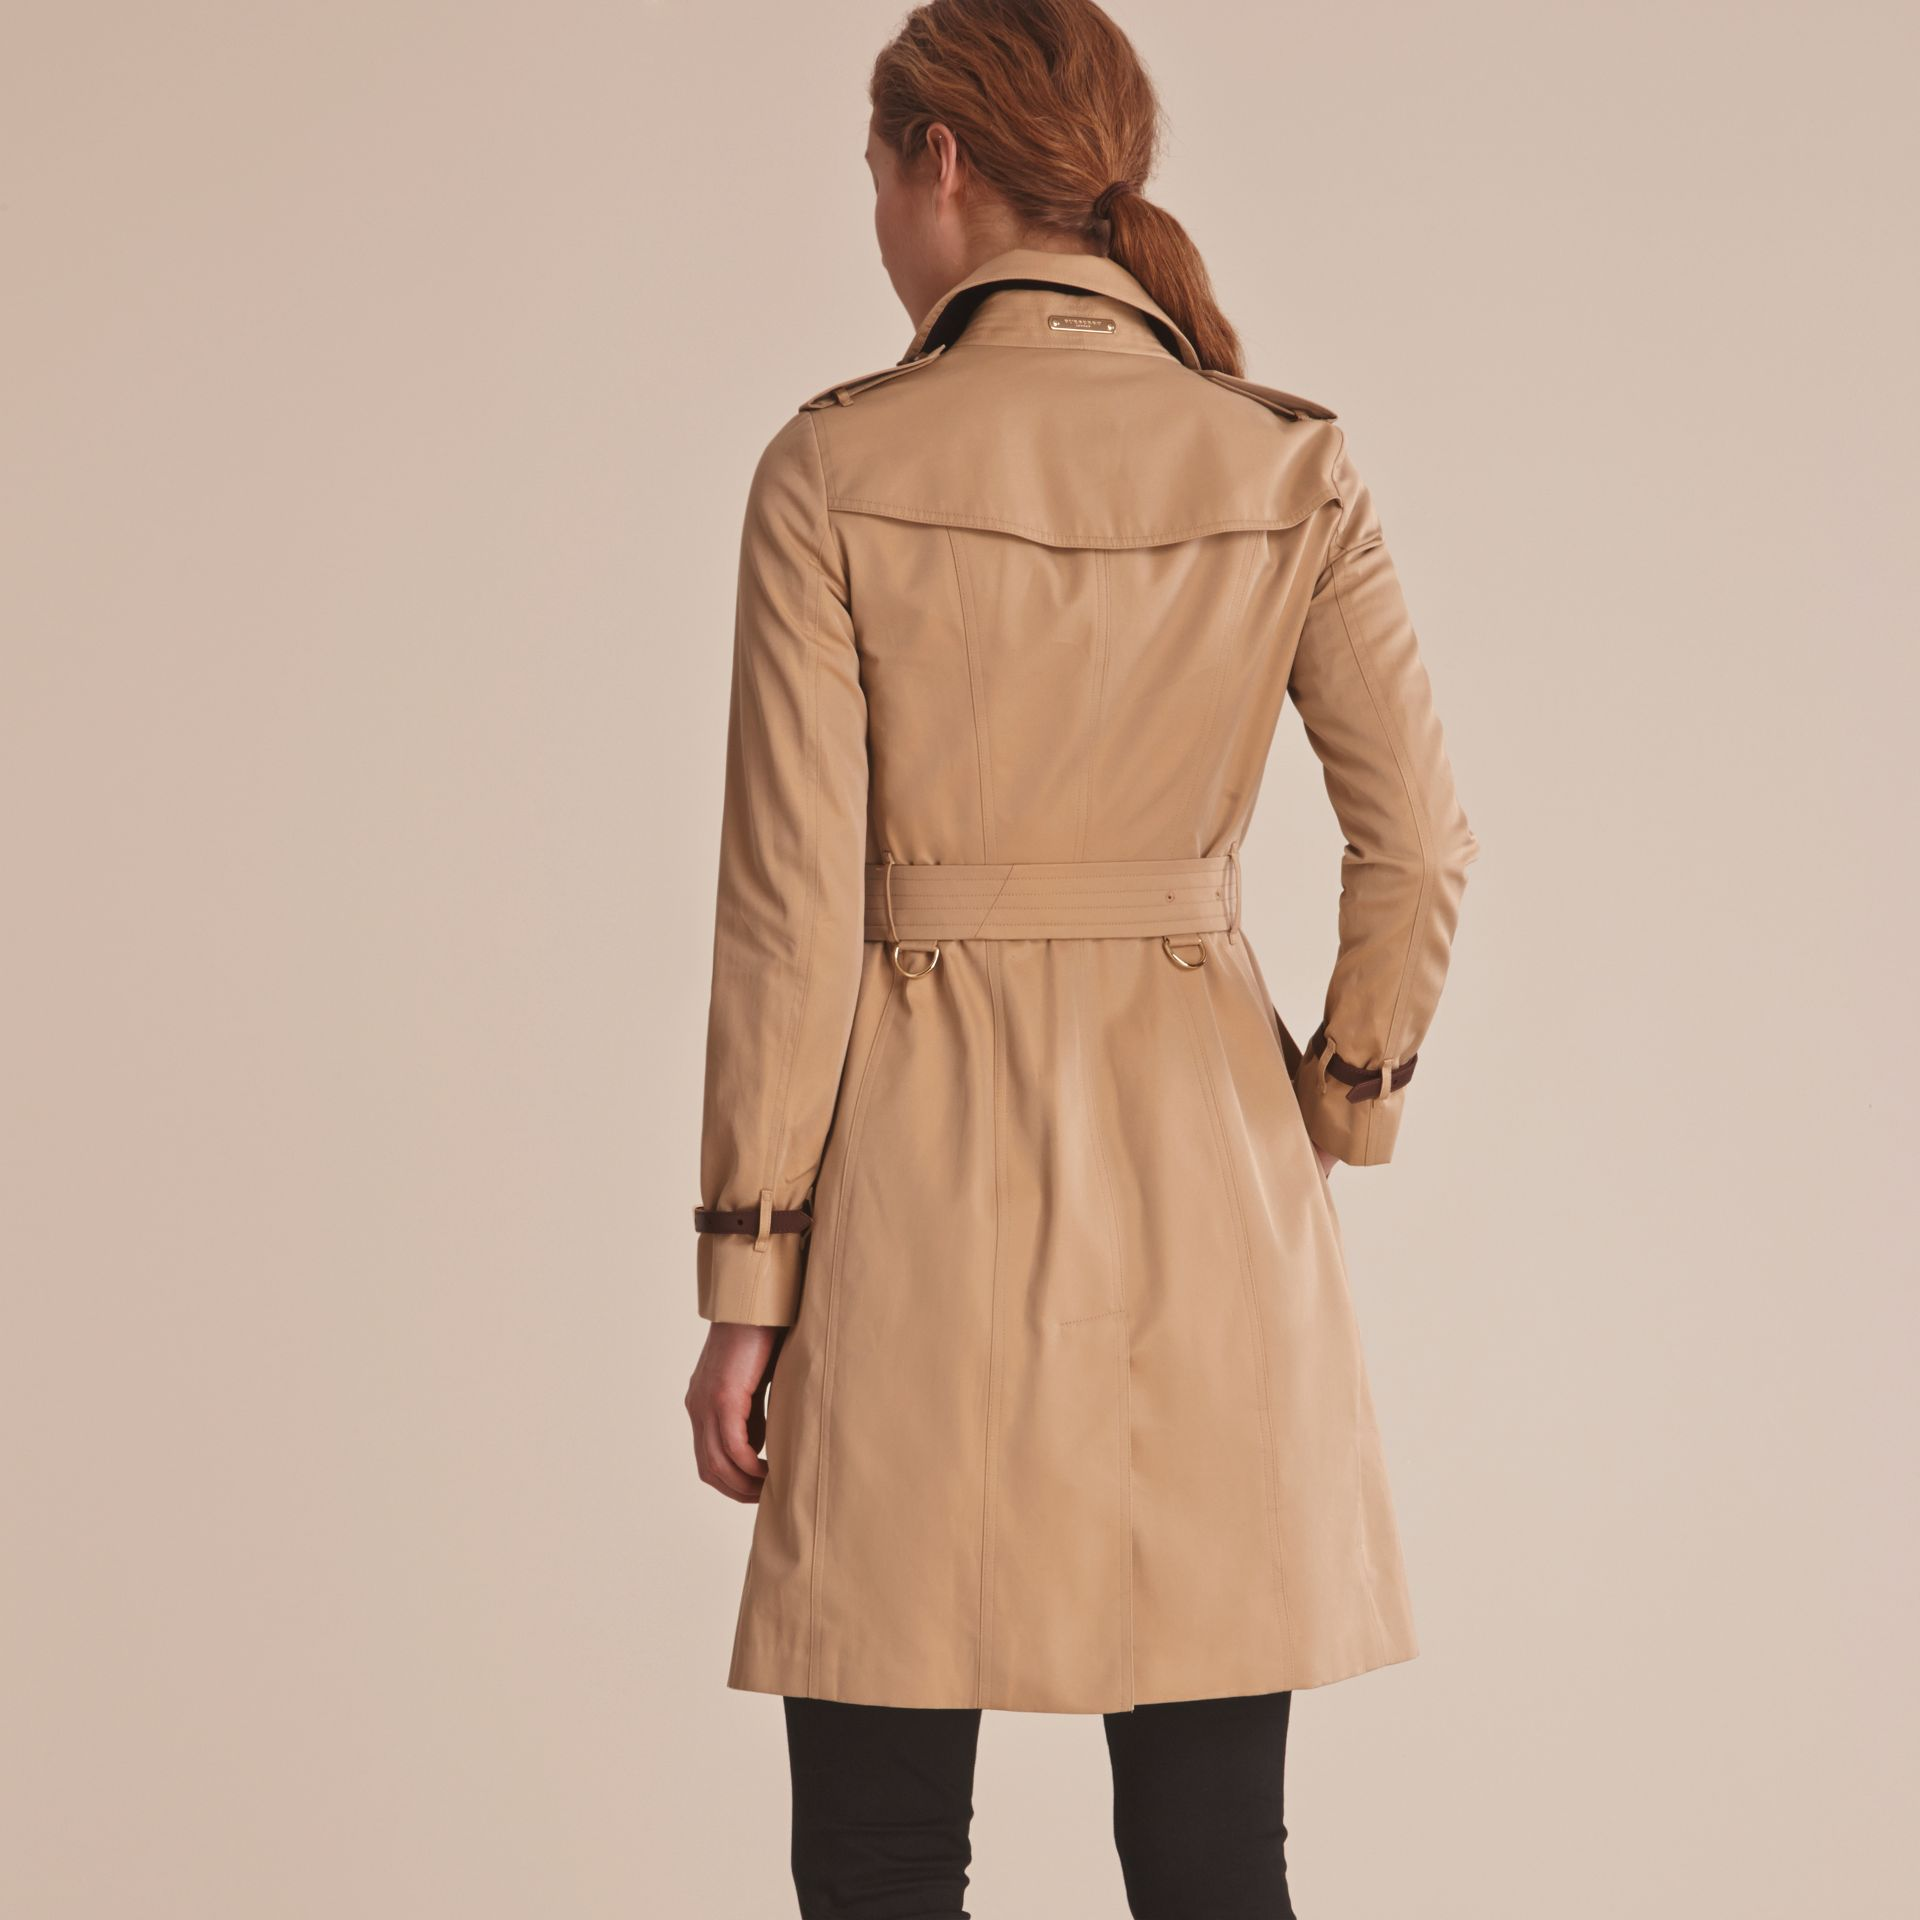 Trench-coat en gabardine de coton avec bordure en cuir - photo de la galerie 3